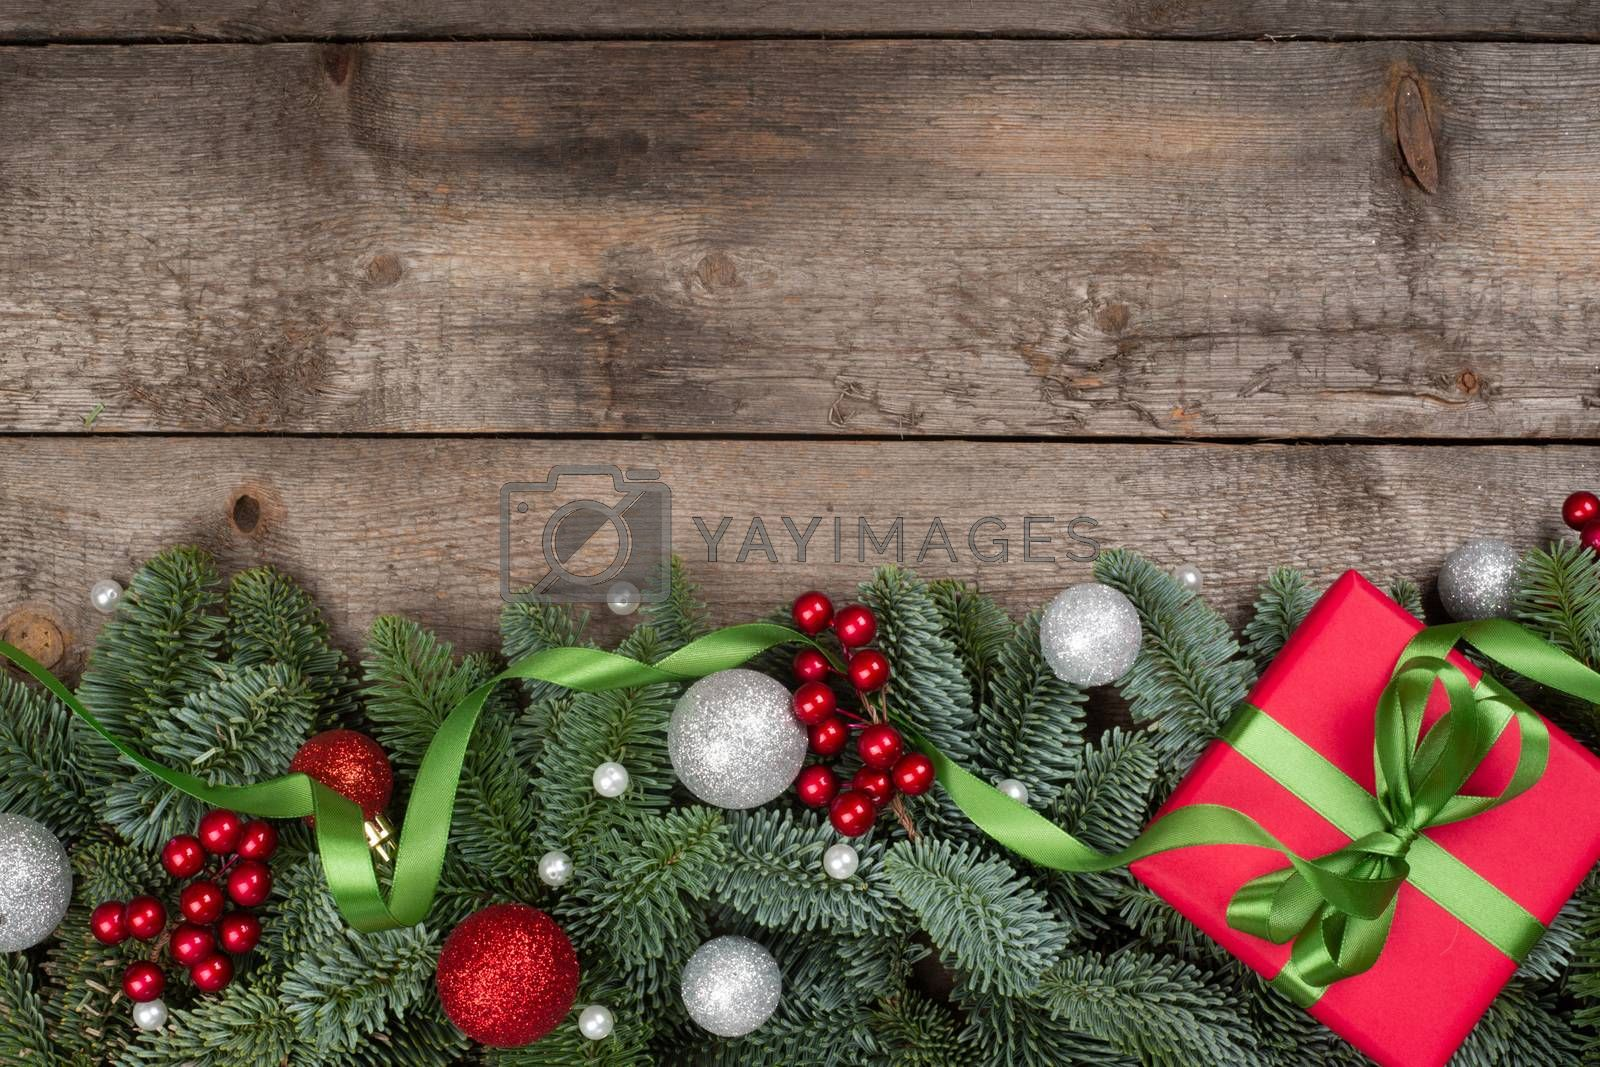 Royalty free image of Christmas gift and fir branches by destillat